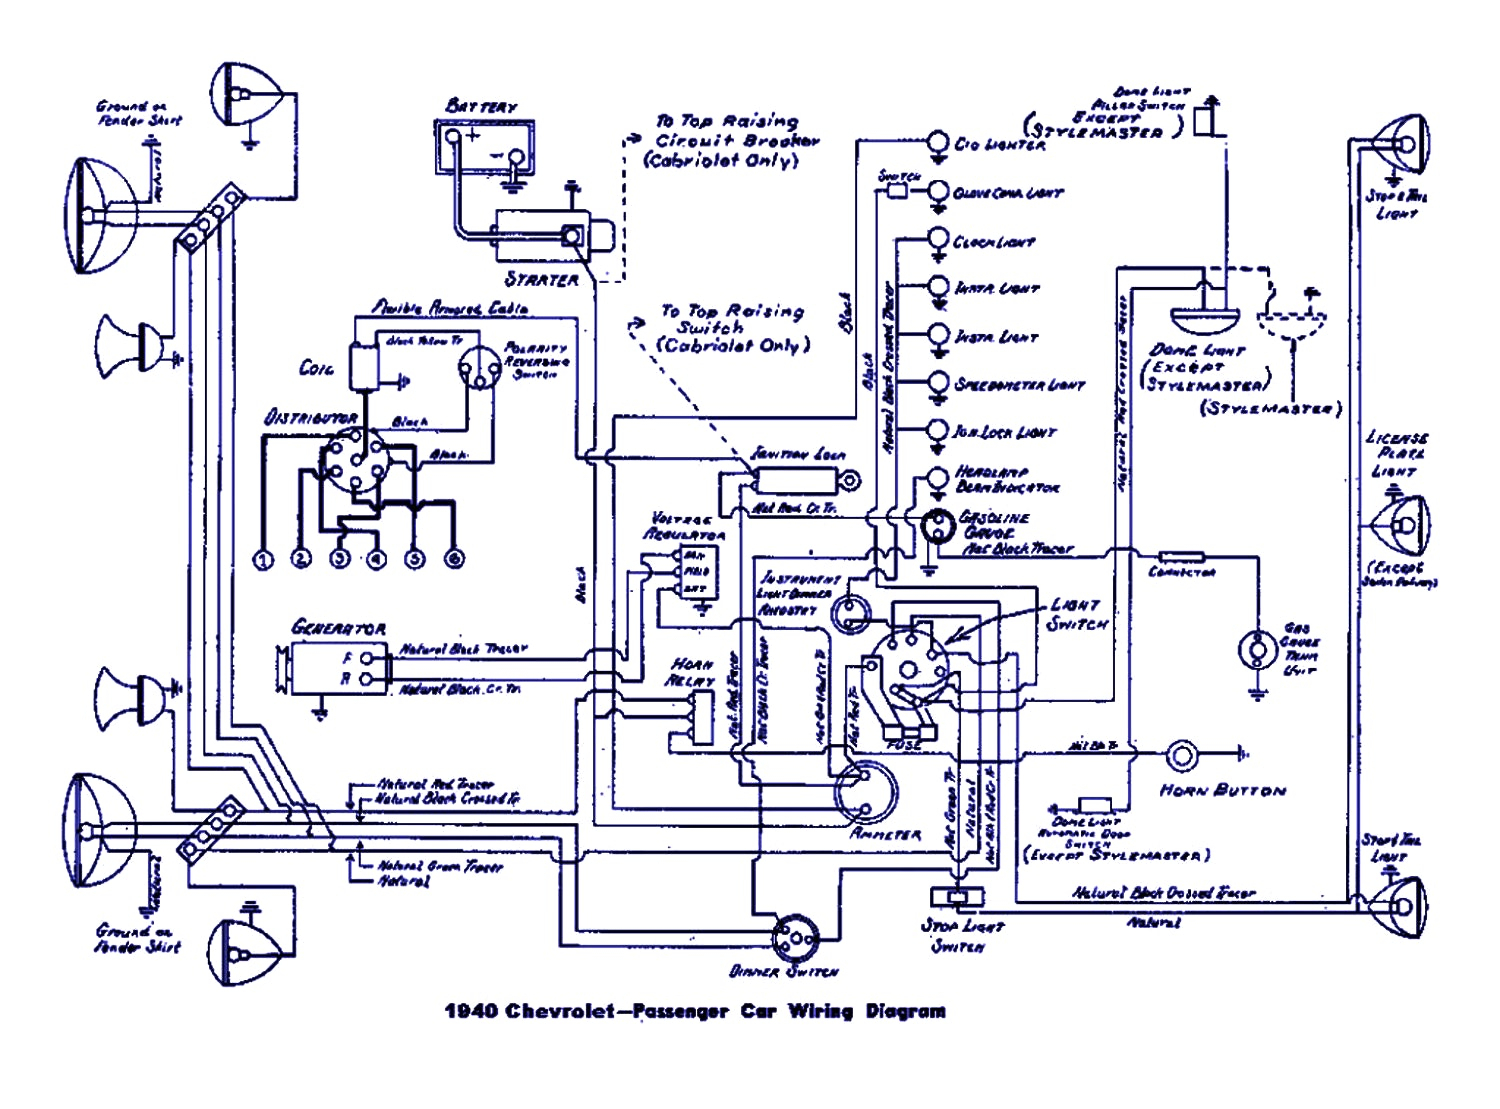 wiring diagram for ez go gas golf cart 86 chevy truck collection of 36 volt sample